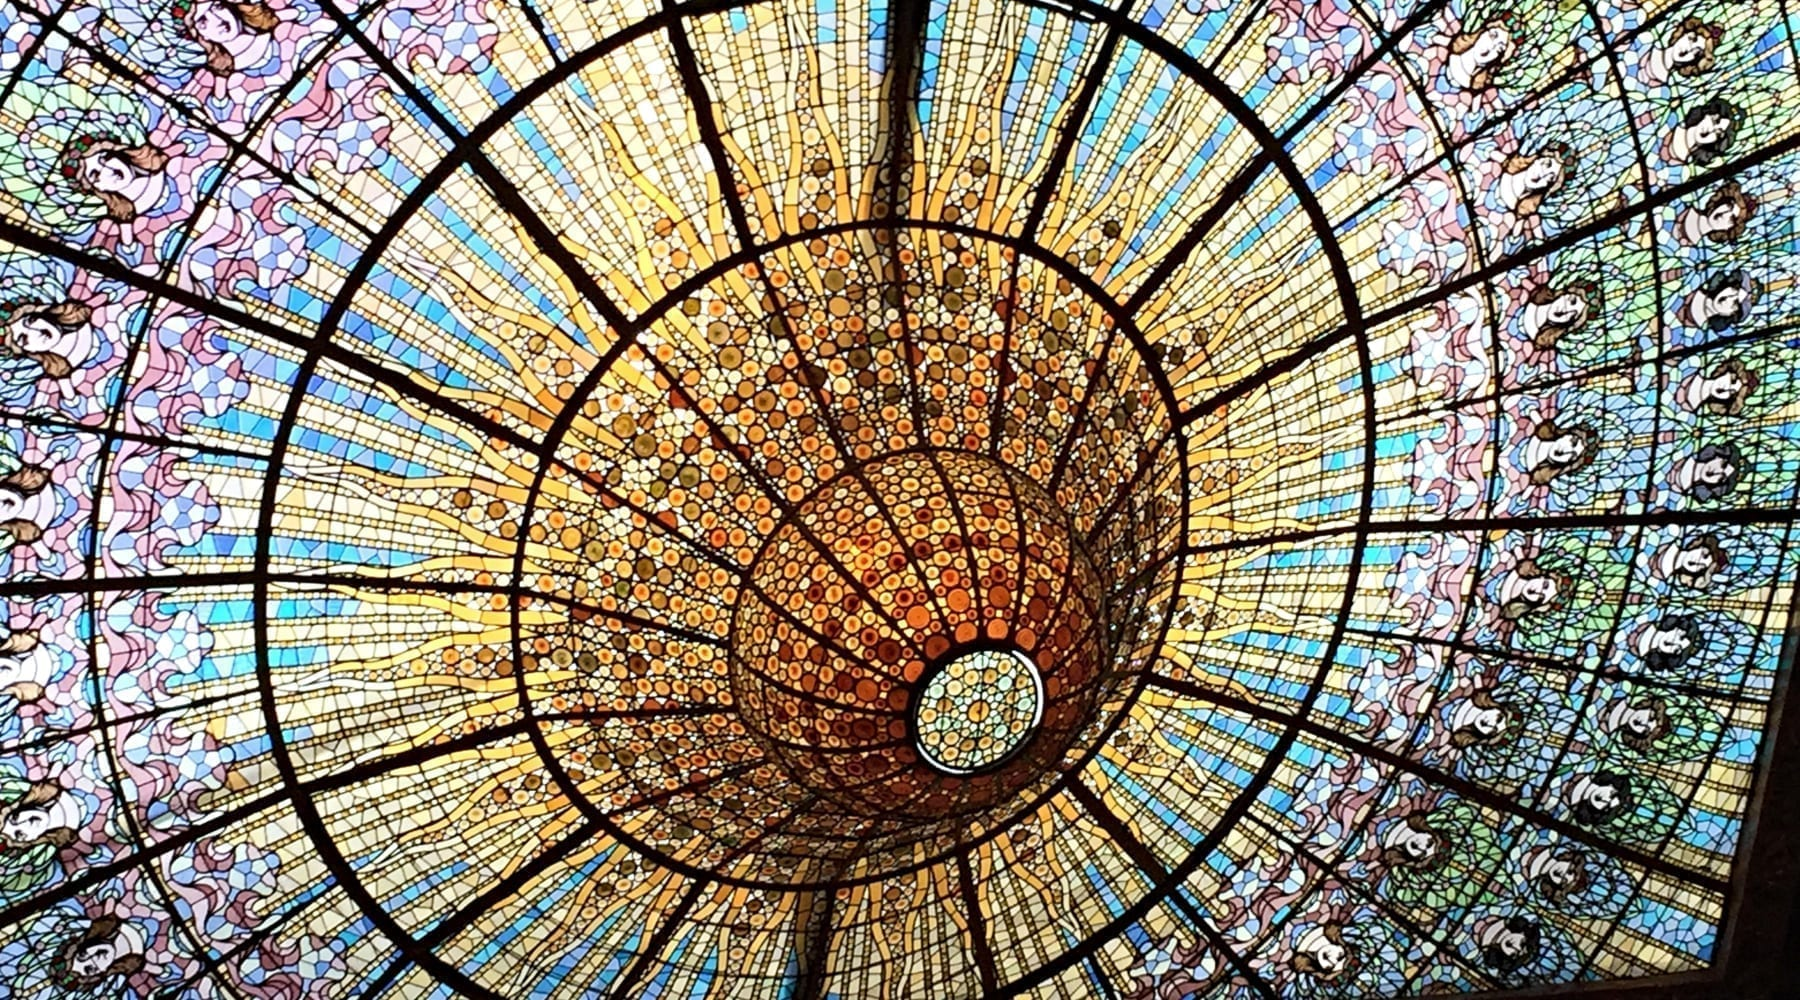 """The ceiling of a music hall in Barcelona. """"It shows so many women, side by side, all gathered around the light,"""" Christa Brown said. """"To me, it seems meaningful because it makes me think of my """"sisters-in-arms."""" (Photo: Christa Brown)"""